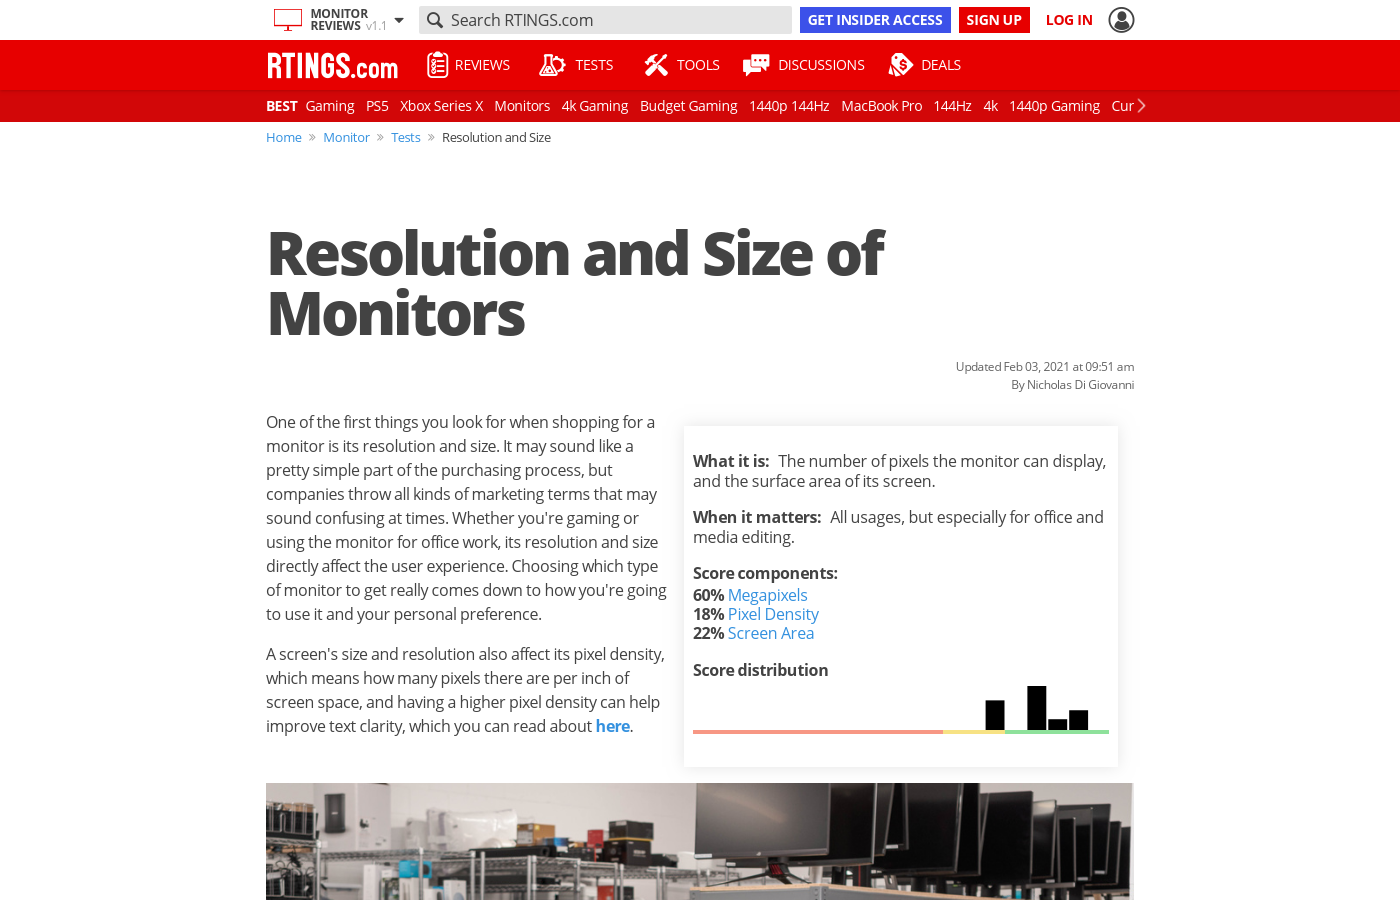 Resolution and Size of Monitors